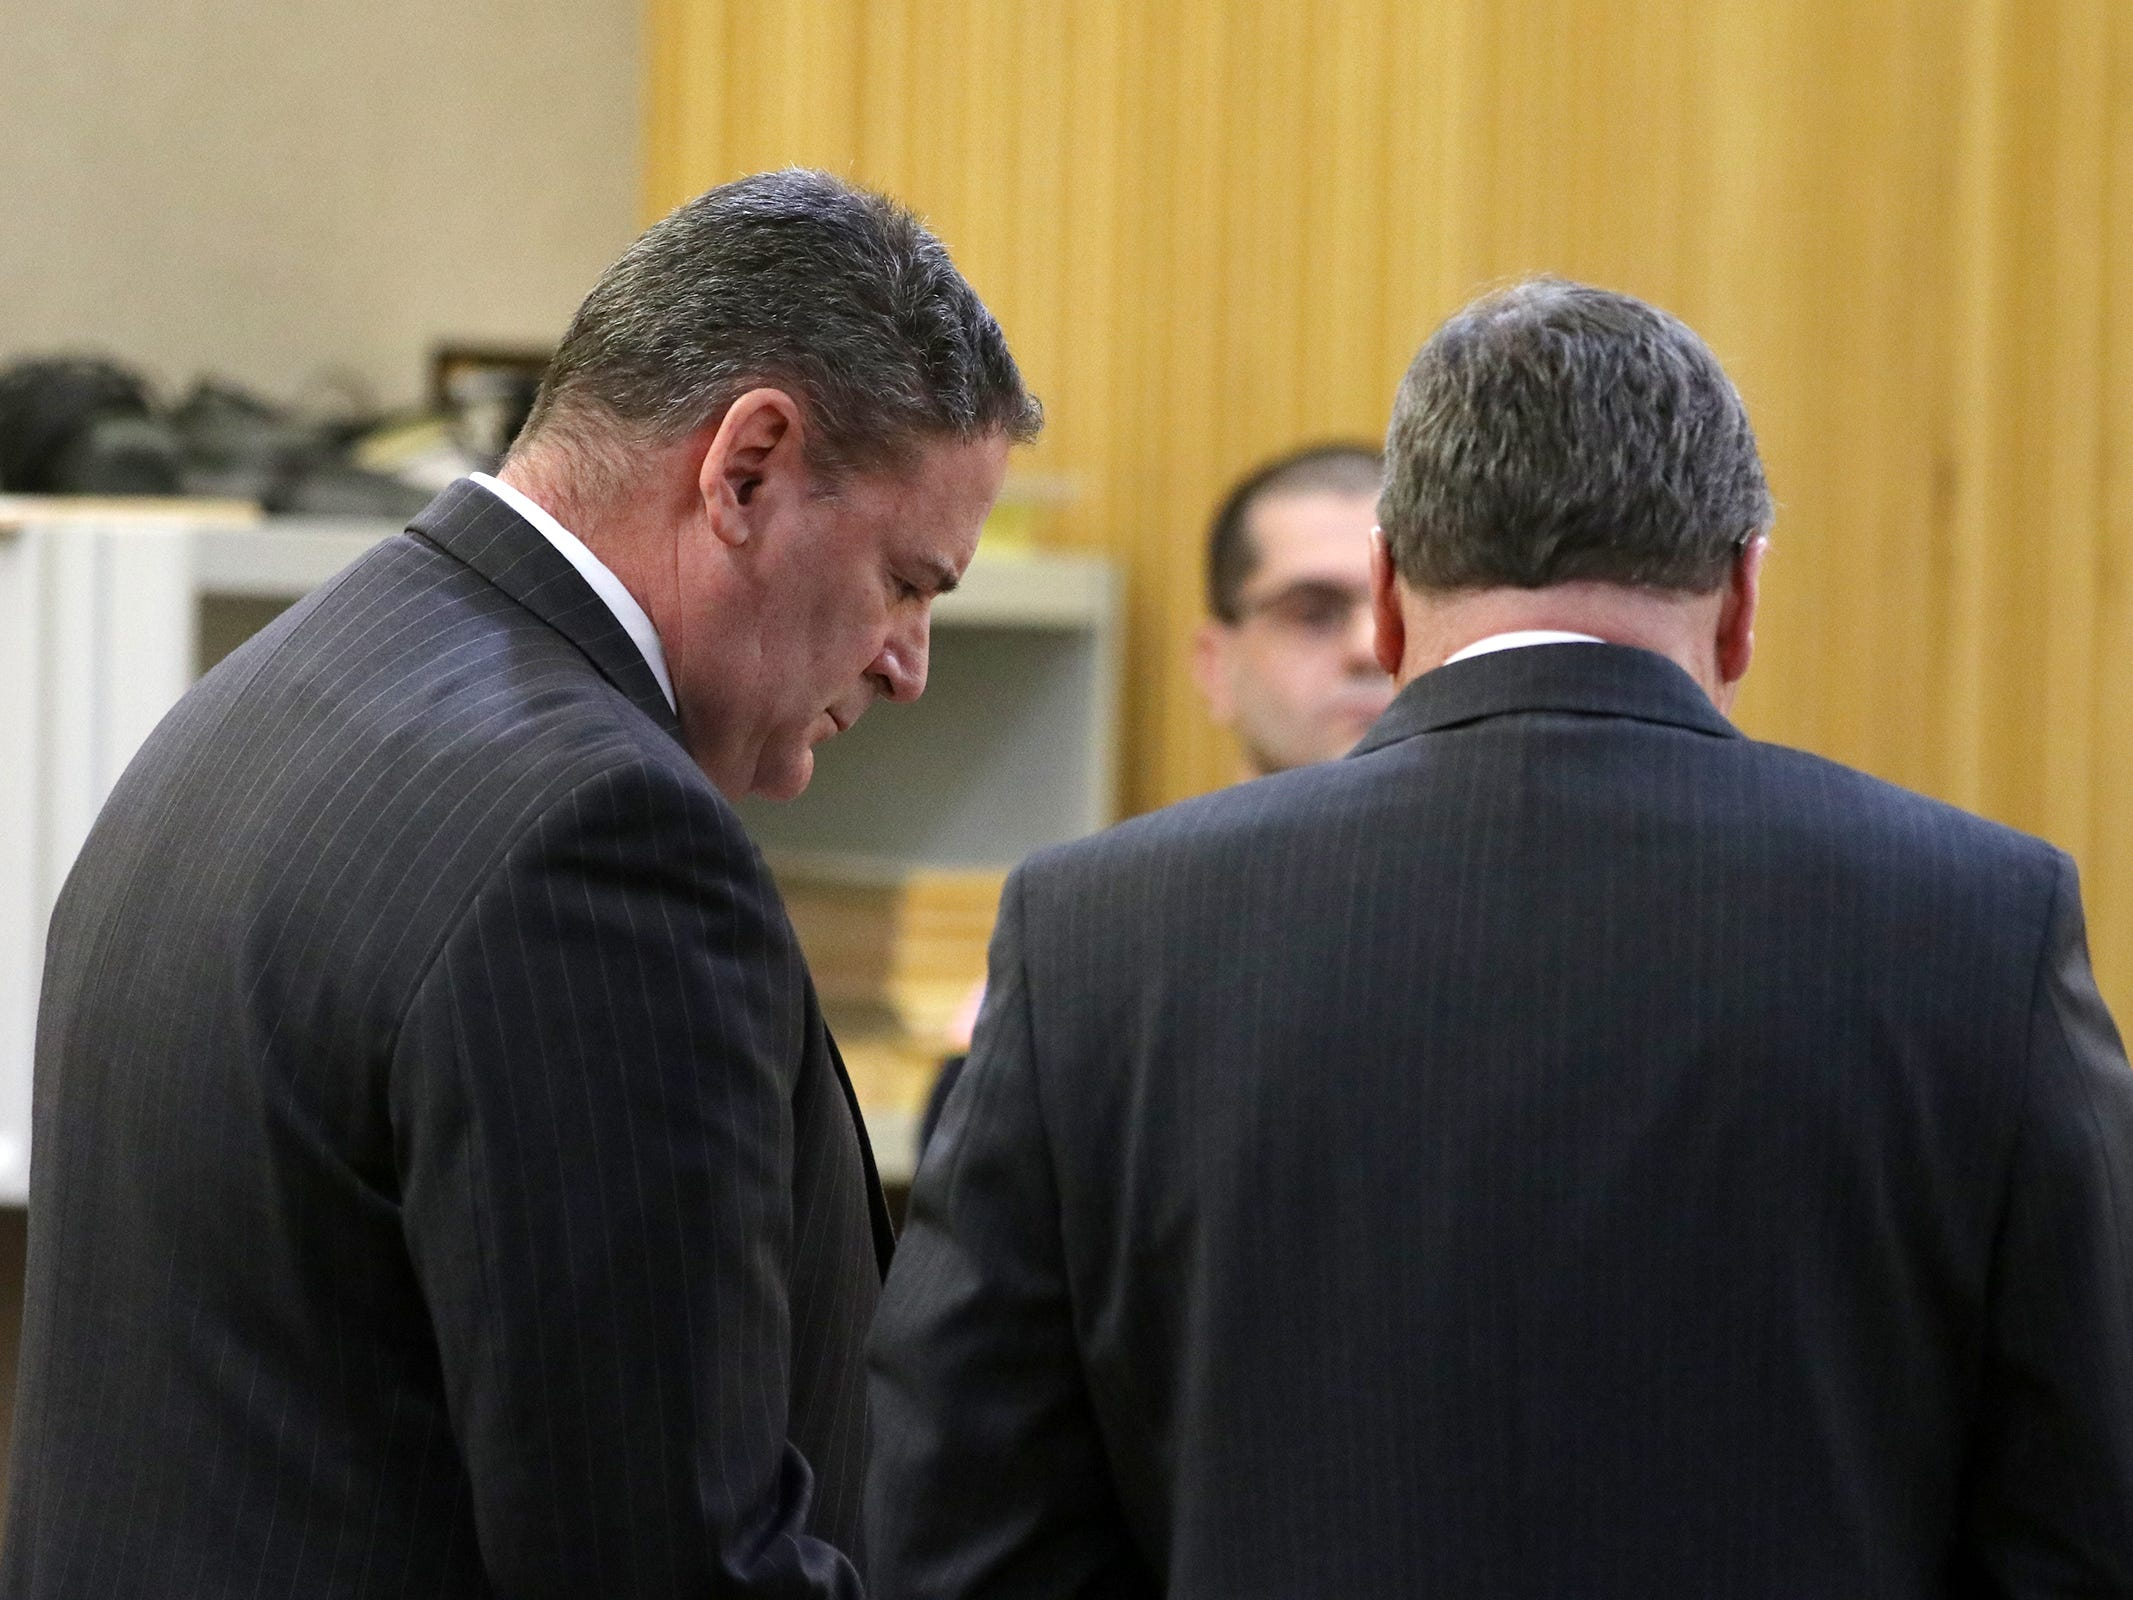 Peter Pflug of Freehold, former chief financial officer for new Horizons in Autism, for stealing almost $115,000 from the non-profit organization, speaks to his lawyer, Robert A. Honecker Jr. during sentencing before Judge Ellen Torregrossa-O'Connor at Monmouth County Courthouse in Freehold, NJ Friday, March 22, 2019.